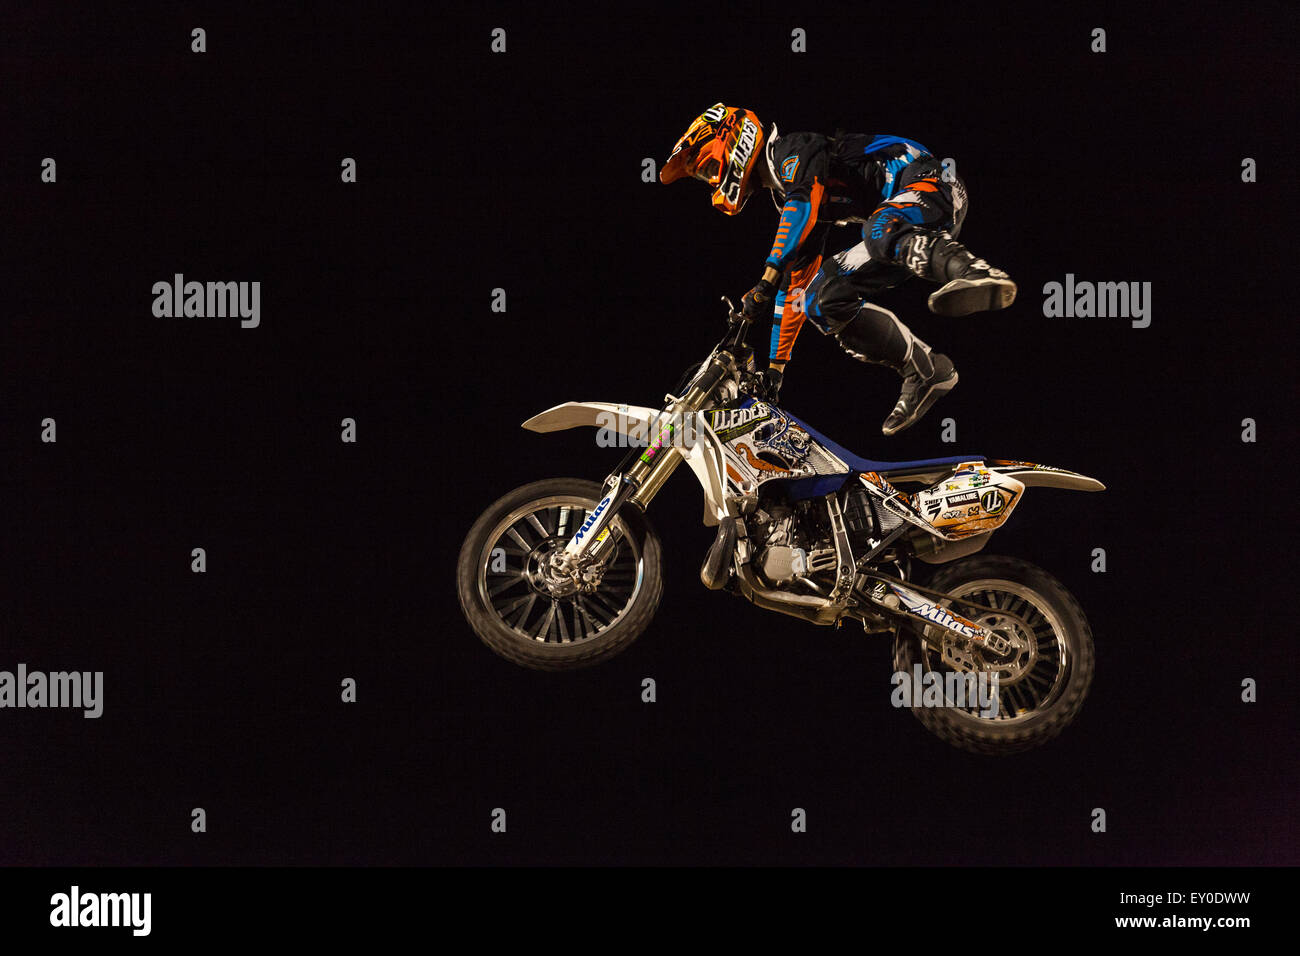 freestyle motocross riders 2015 schedule